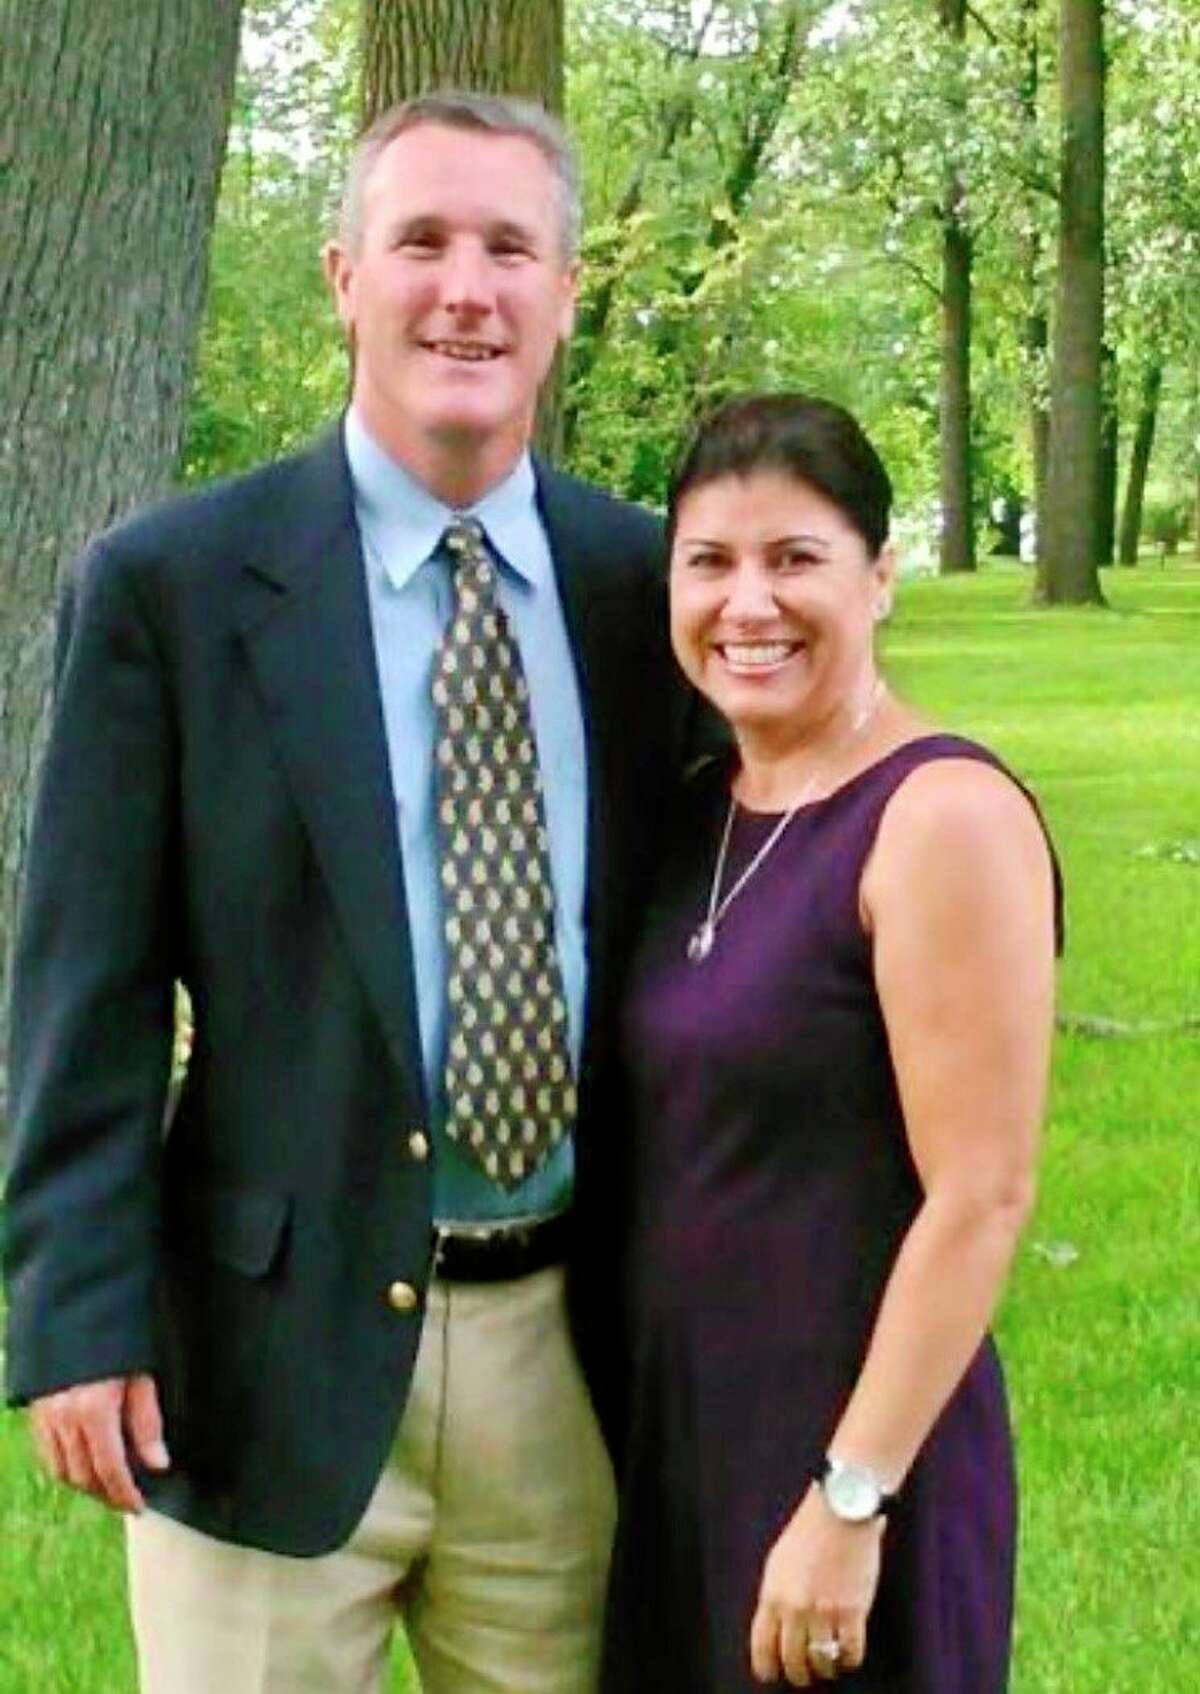 Michael and Claudia Goad will be the chairs for Midland's Open Door's2021 annual fundraiser, Dine on the Door. (Photo provided)